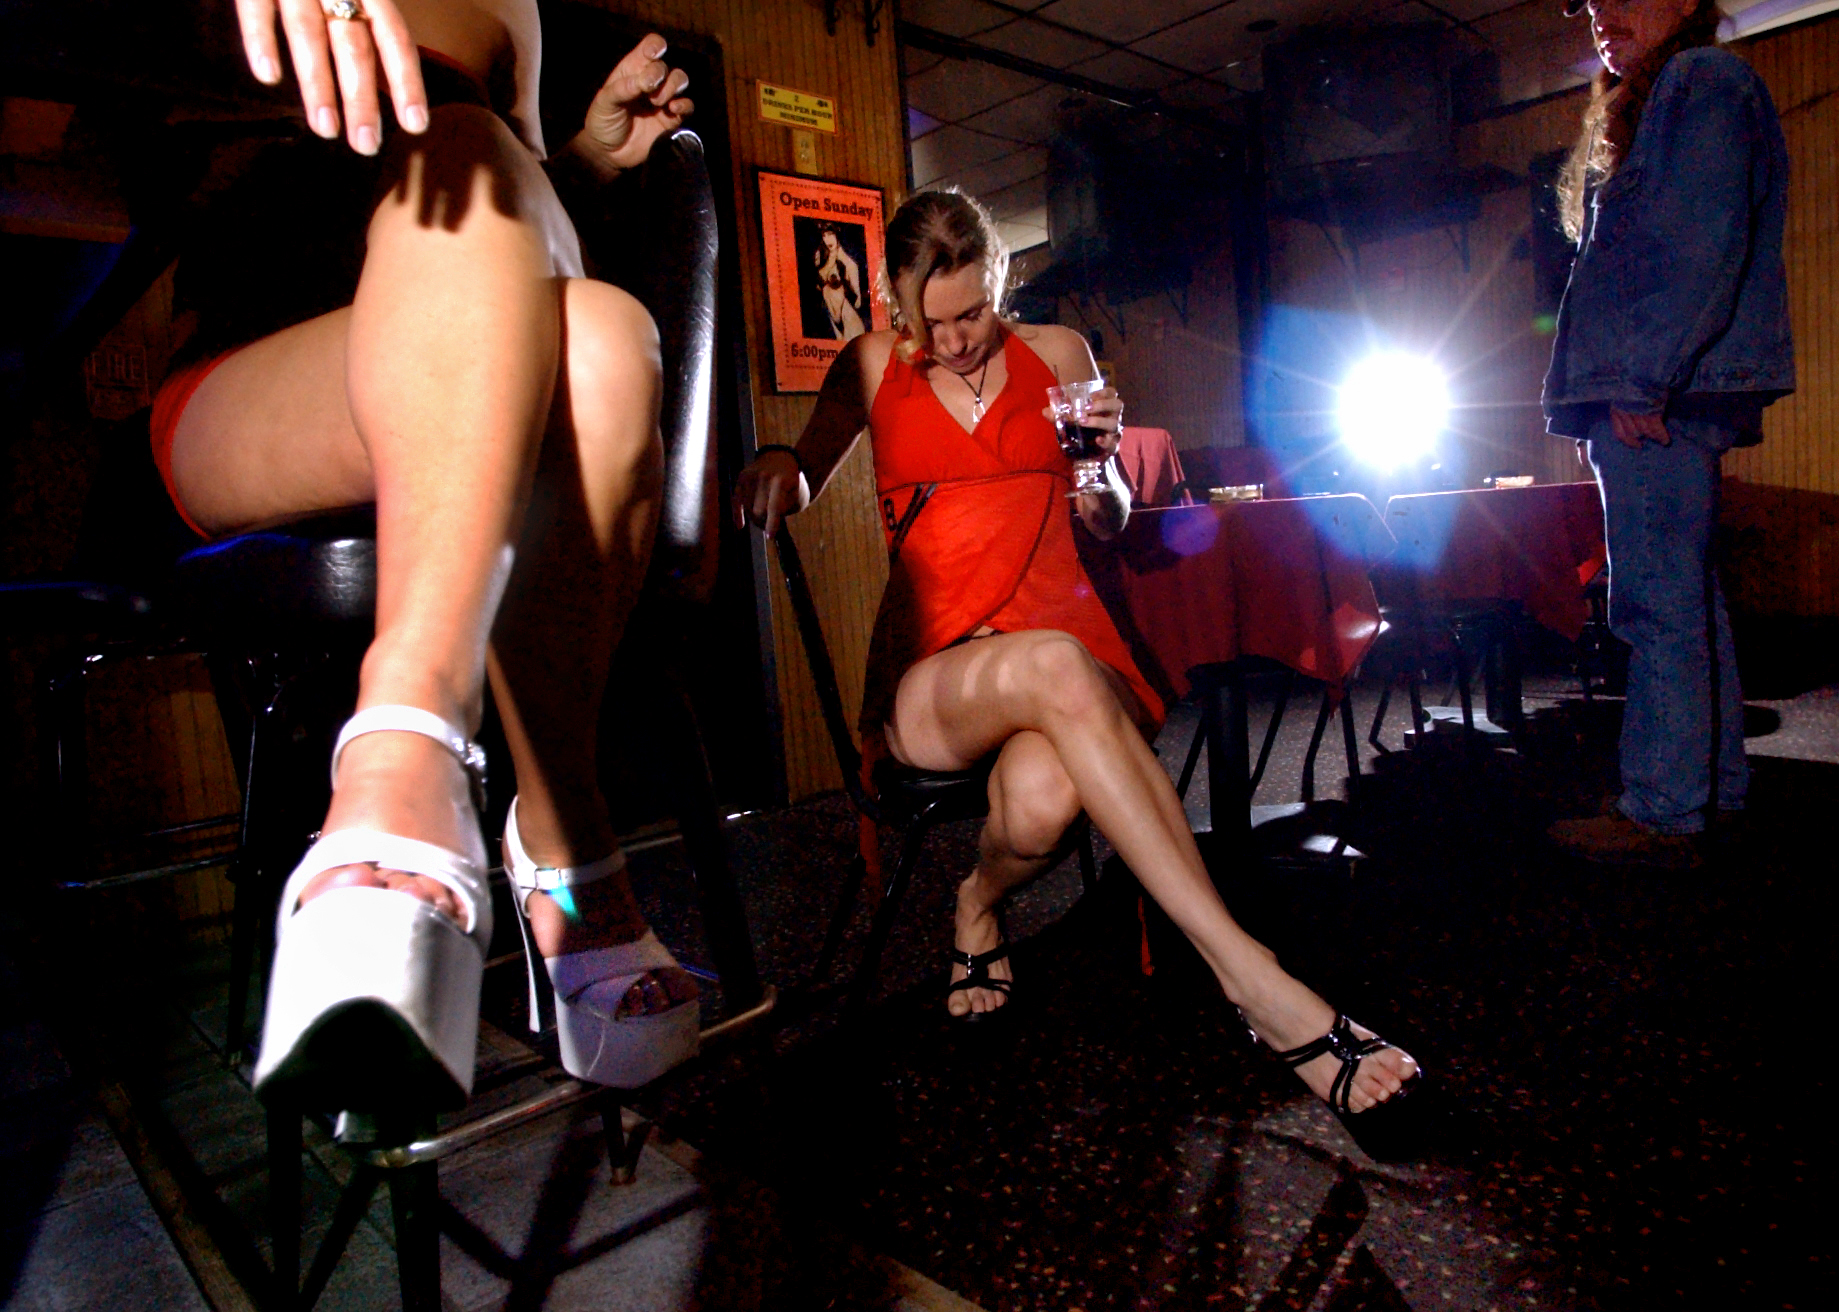 Porn week budapest party dvd